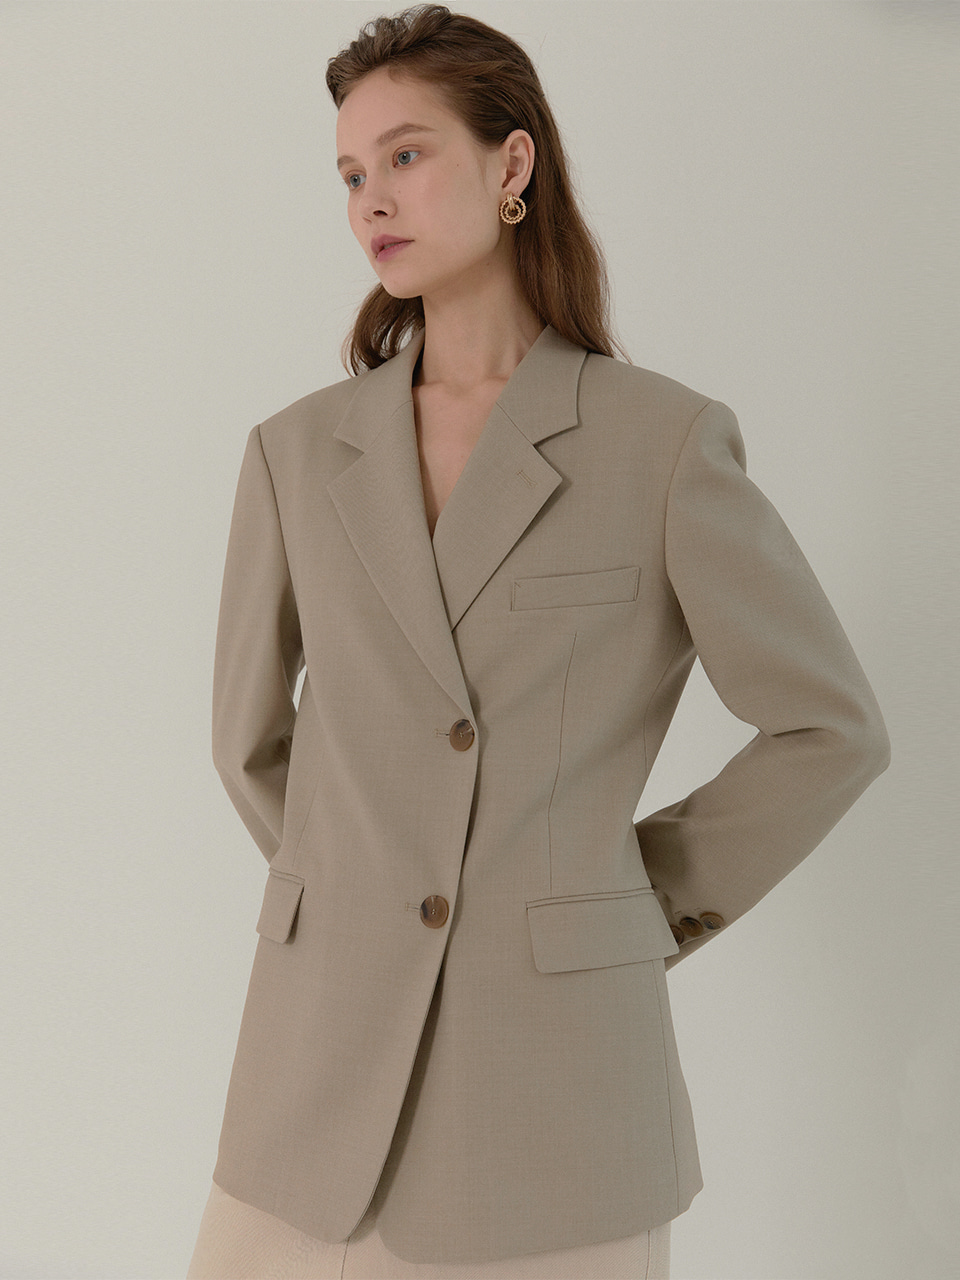 AMBER Classic Tailored Half Double Jacket_SAND BEIGE